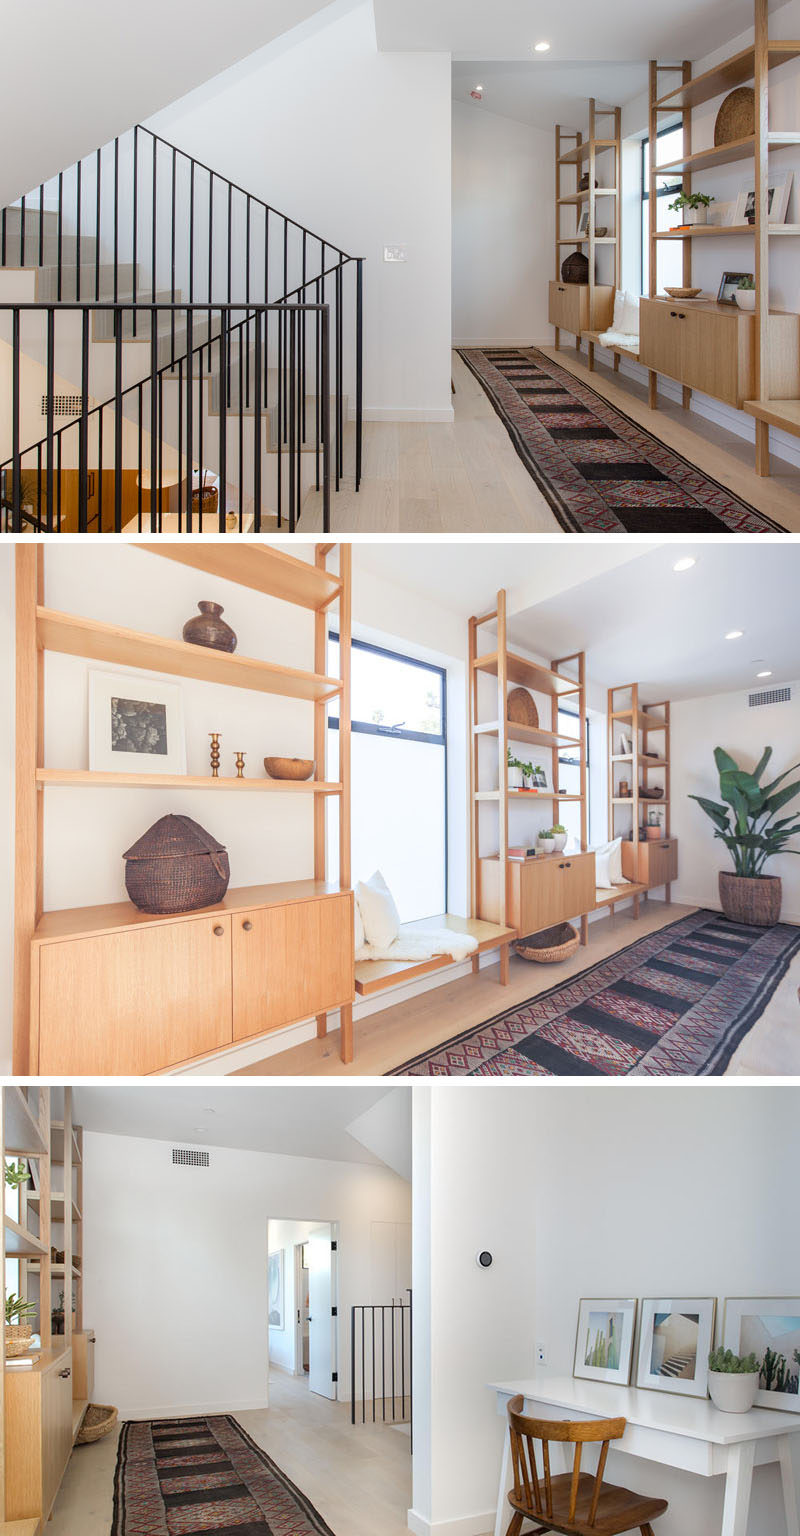 Wide oak flooring covers the upper floors of this modern house, and wood shelving provides the perfect spot for displaying personal items or for sitting and looking out the window.